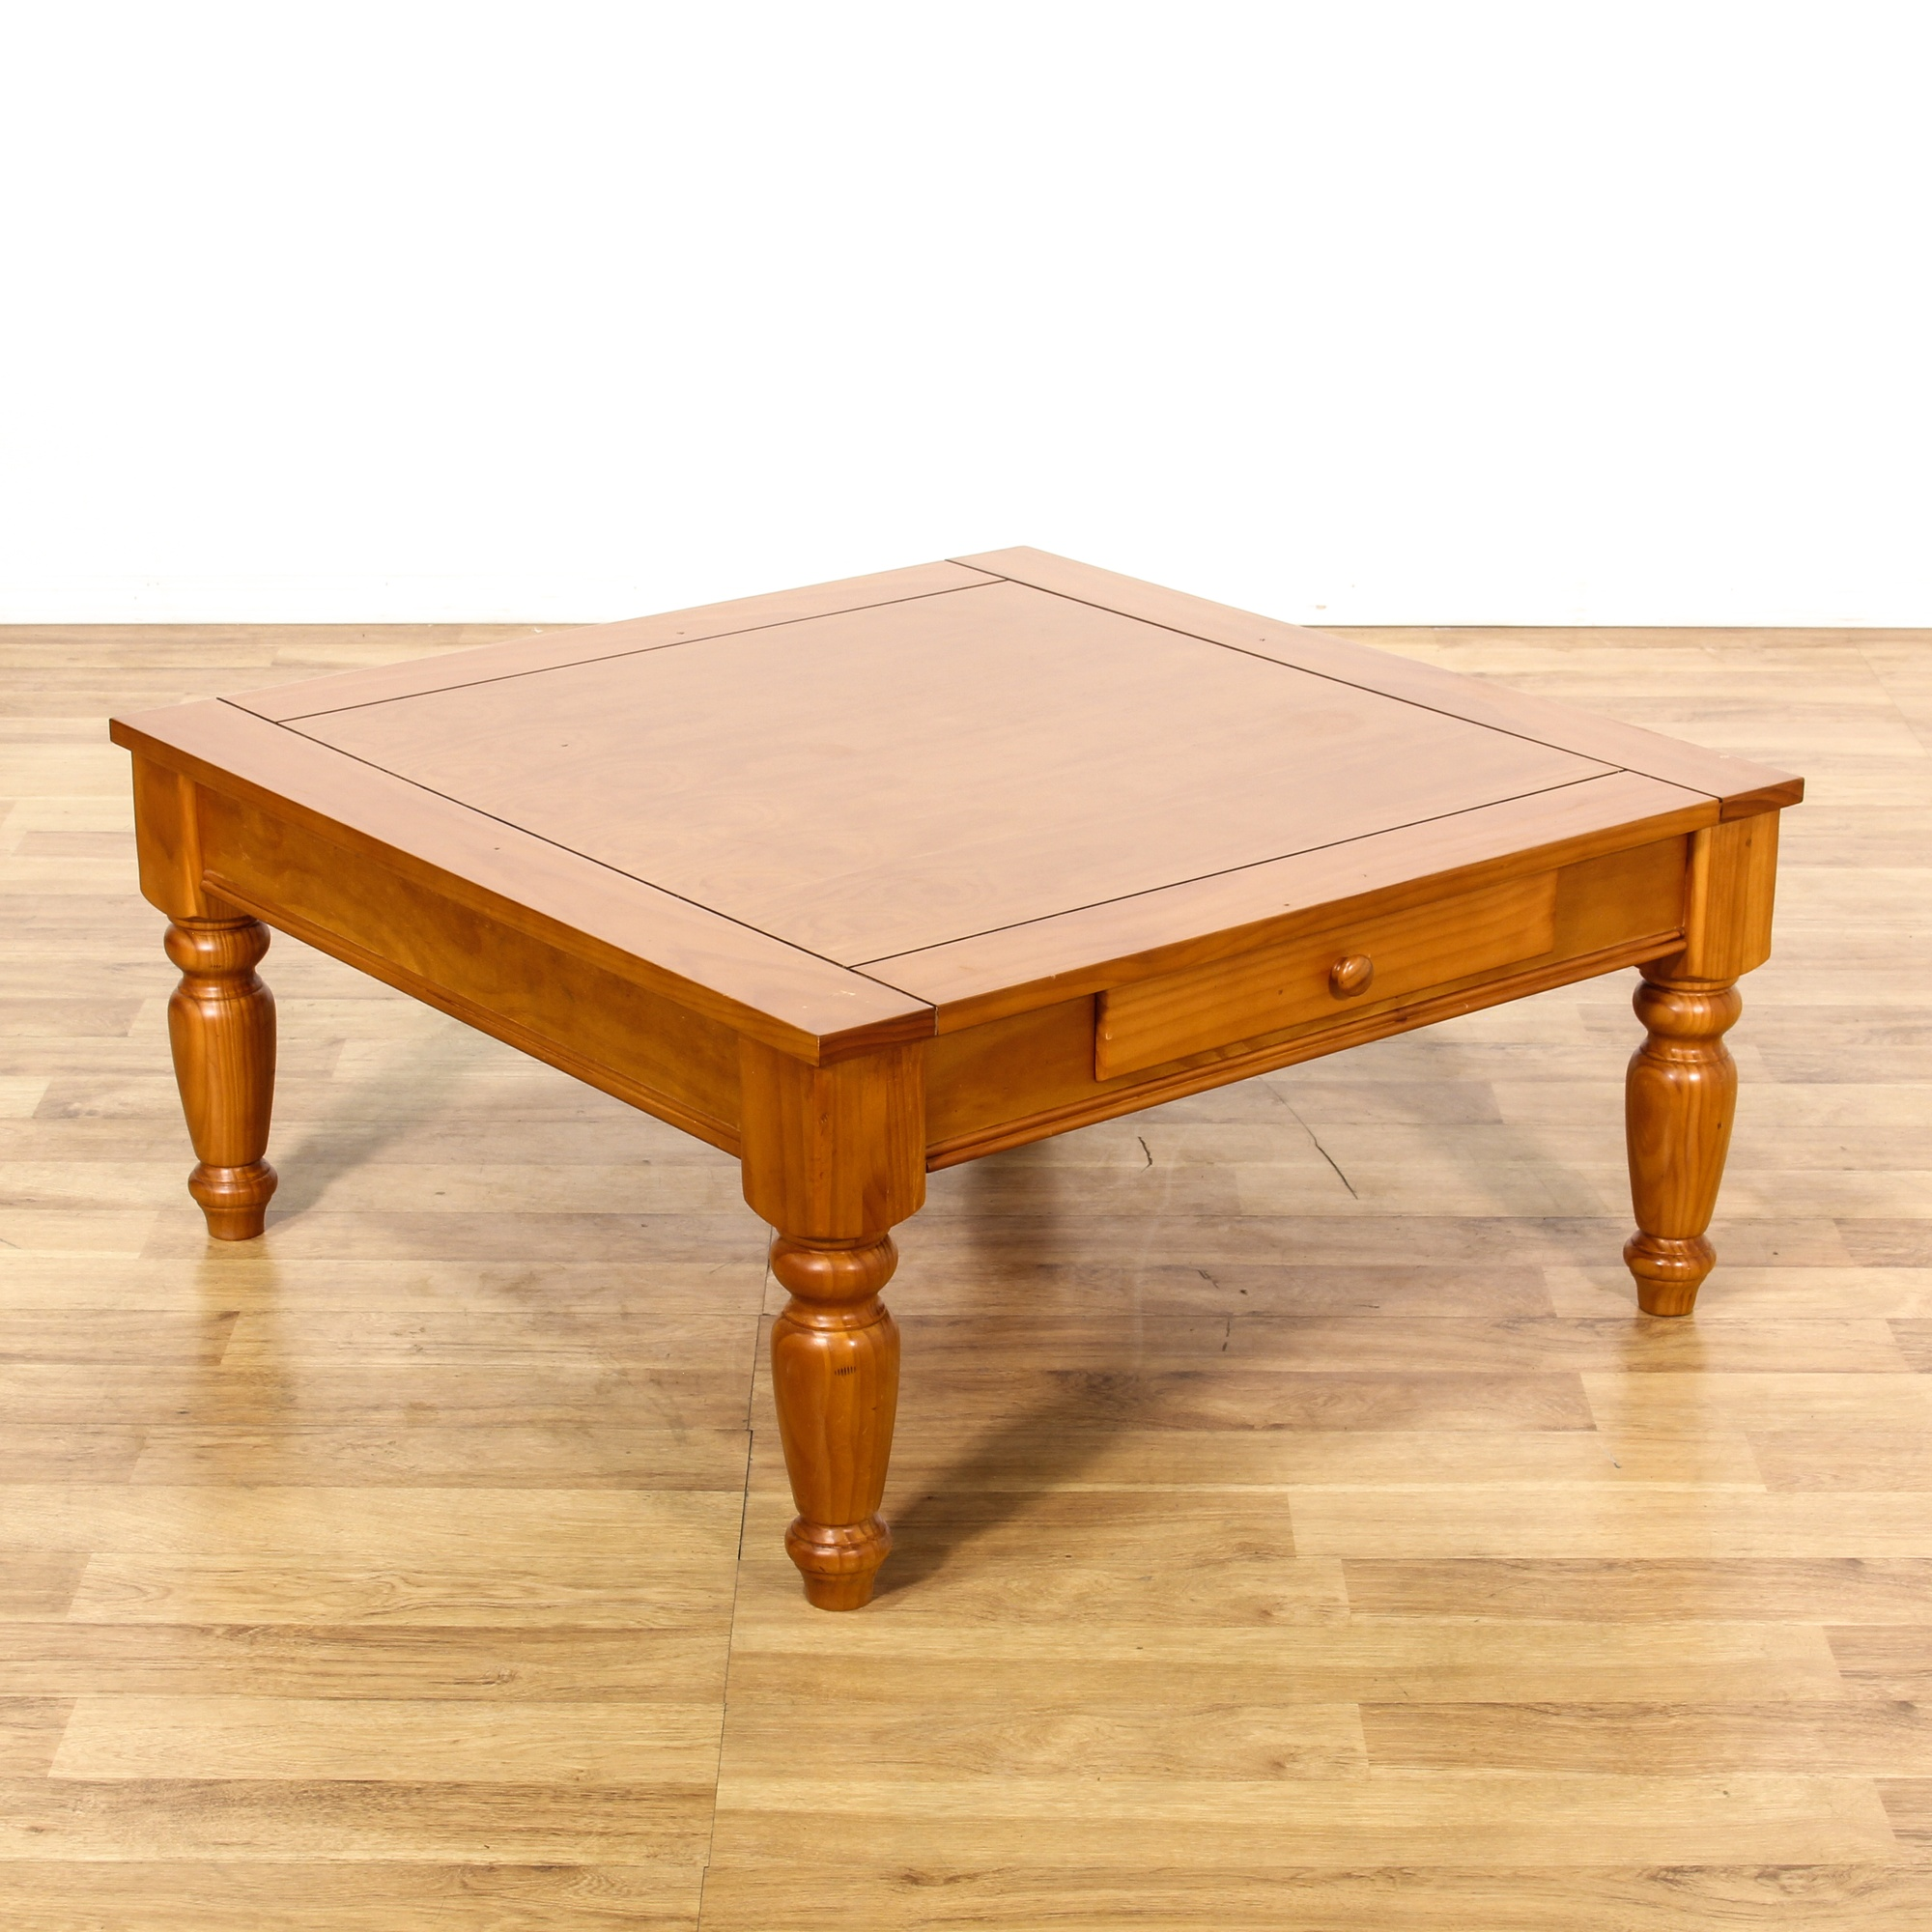 Pine Coffee Table Hull: Large Rustic Country Pine Stained Coffee Table